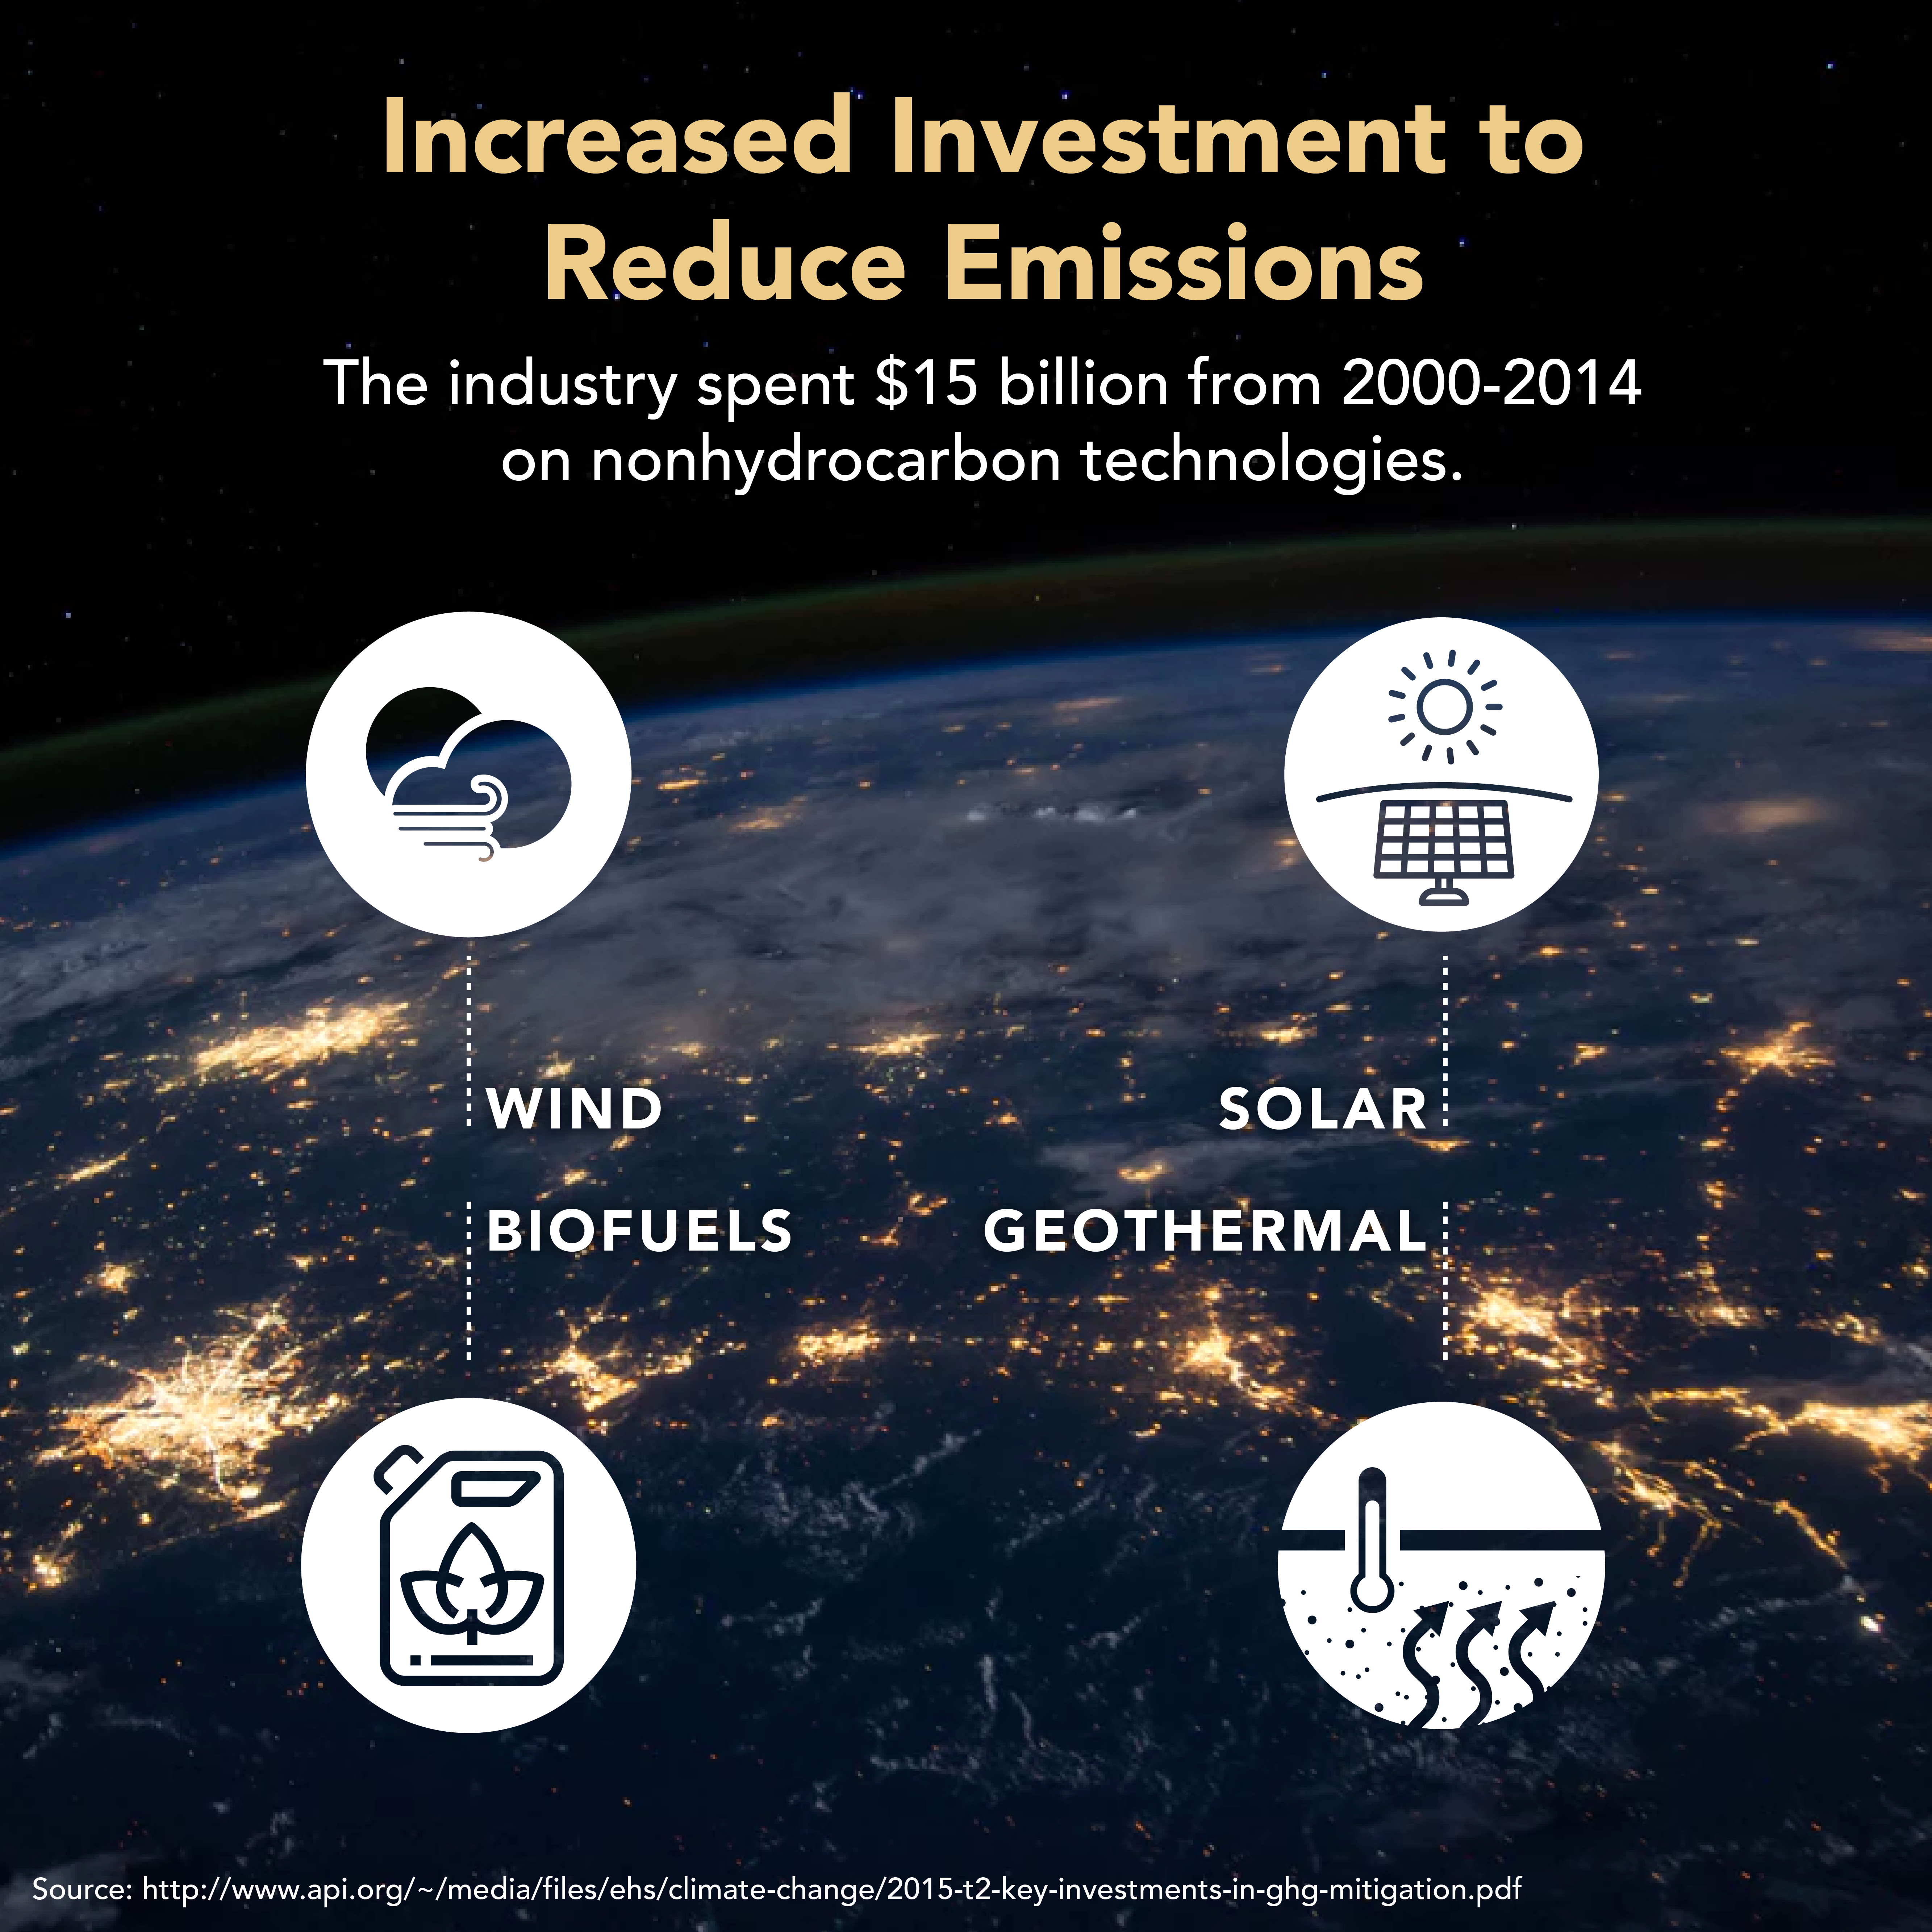 increased investment to reduce emissions